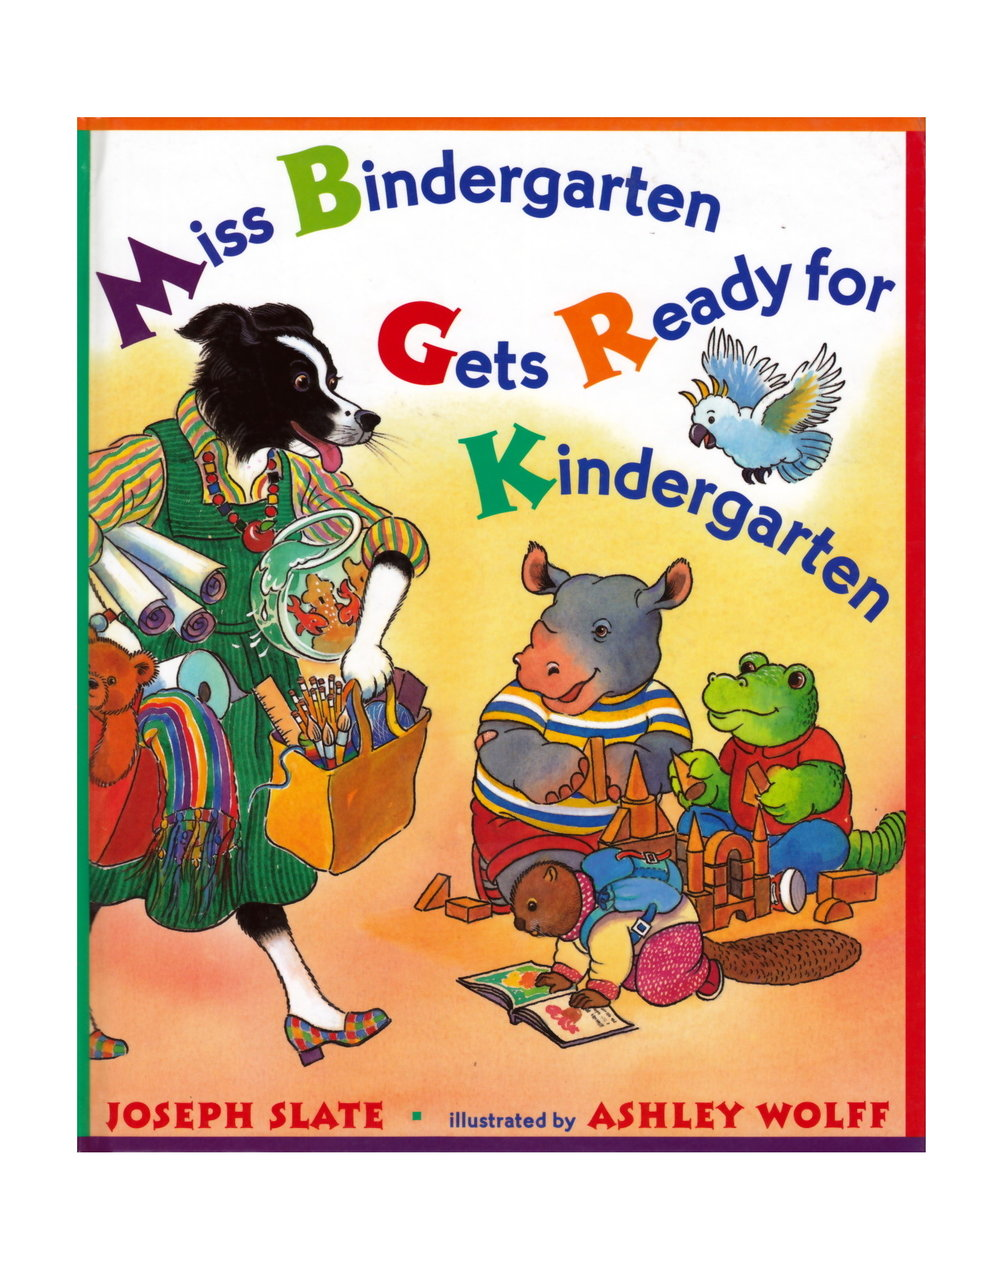 from the Summary: It's the first day of kindergarten and Miss Bindergarten is hard at work getting the classroom ready for her twenty-six new students. Meanwhile, Adam Krupp wakes up, Brenda Heath brushes her teeth, and Christopher Beaker finds his sneaker. Miss Bindergarten puts the finishing touches on the room just in time, and the students arrive. Now the fun can begin! This rhyming, brightly illustrated book is the perfect way to practice the alphabet and to introduce young children to kindergarten.